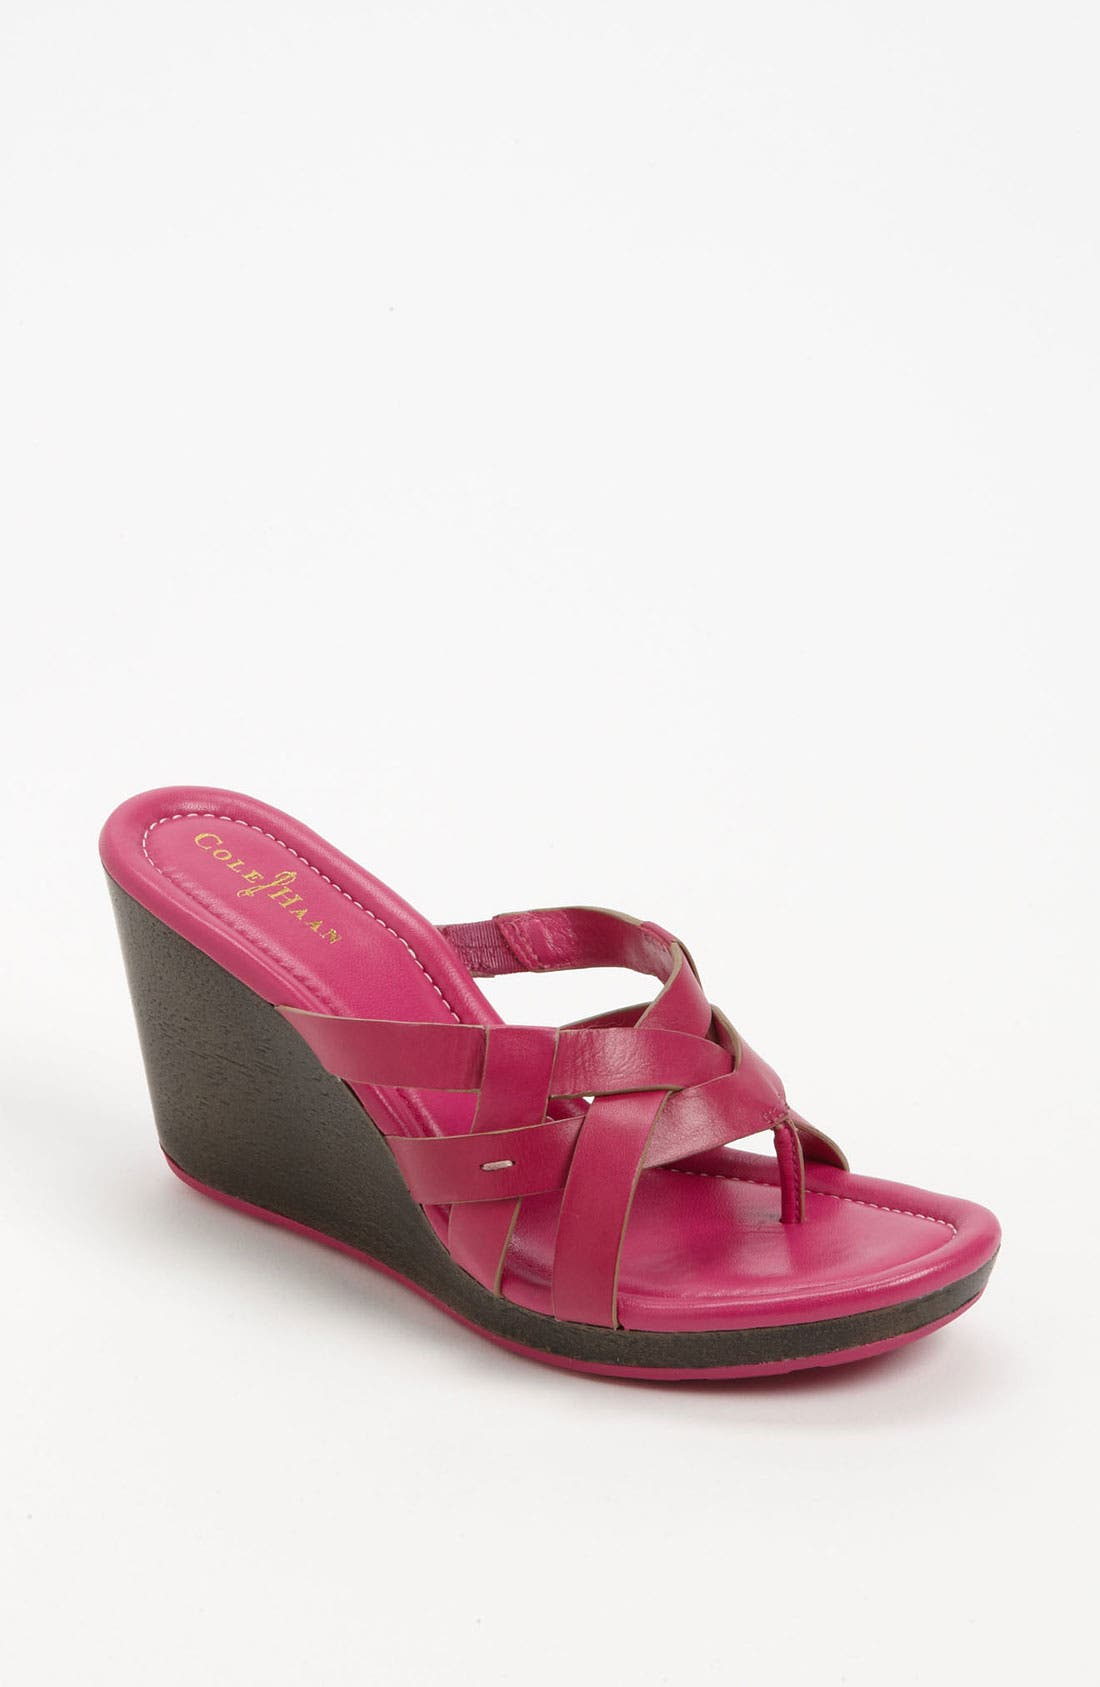 Alternate Image 1 Selected - Cole Haan 'Air Bonnie' Sandal